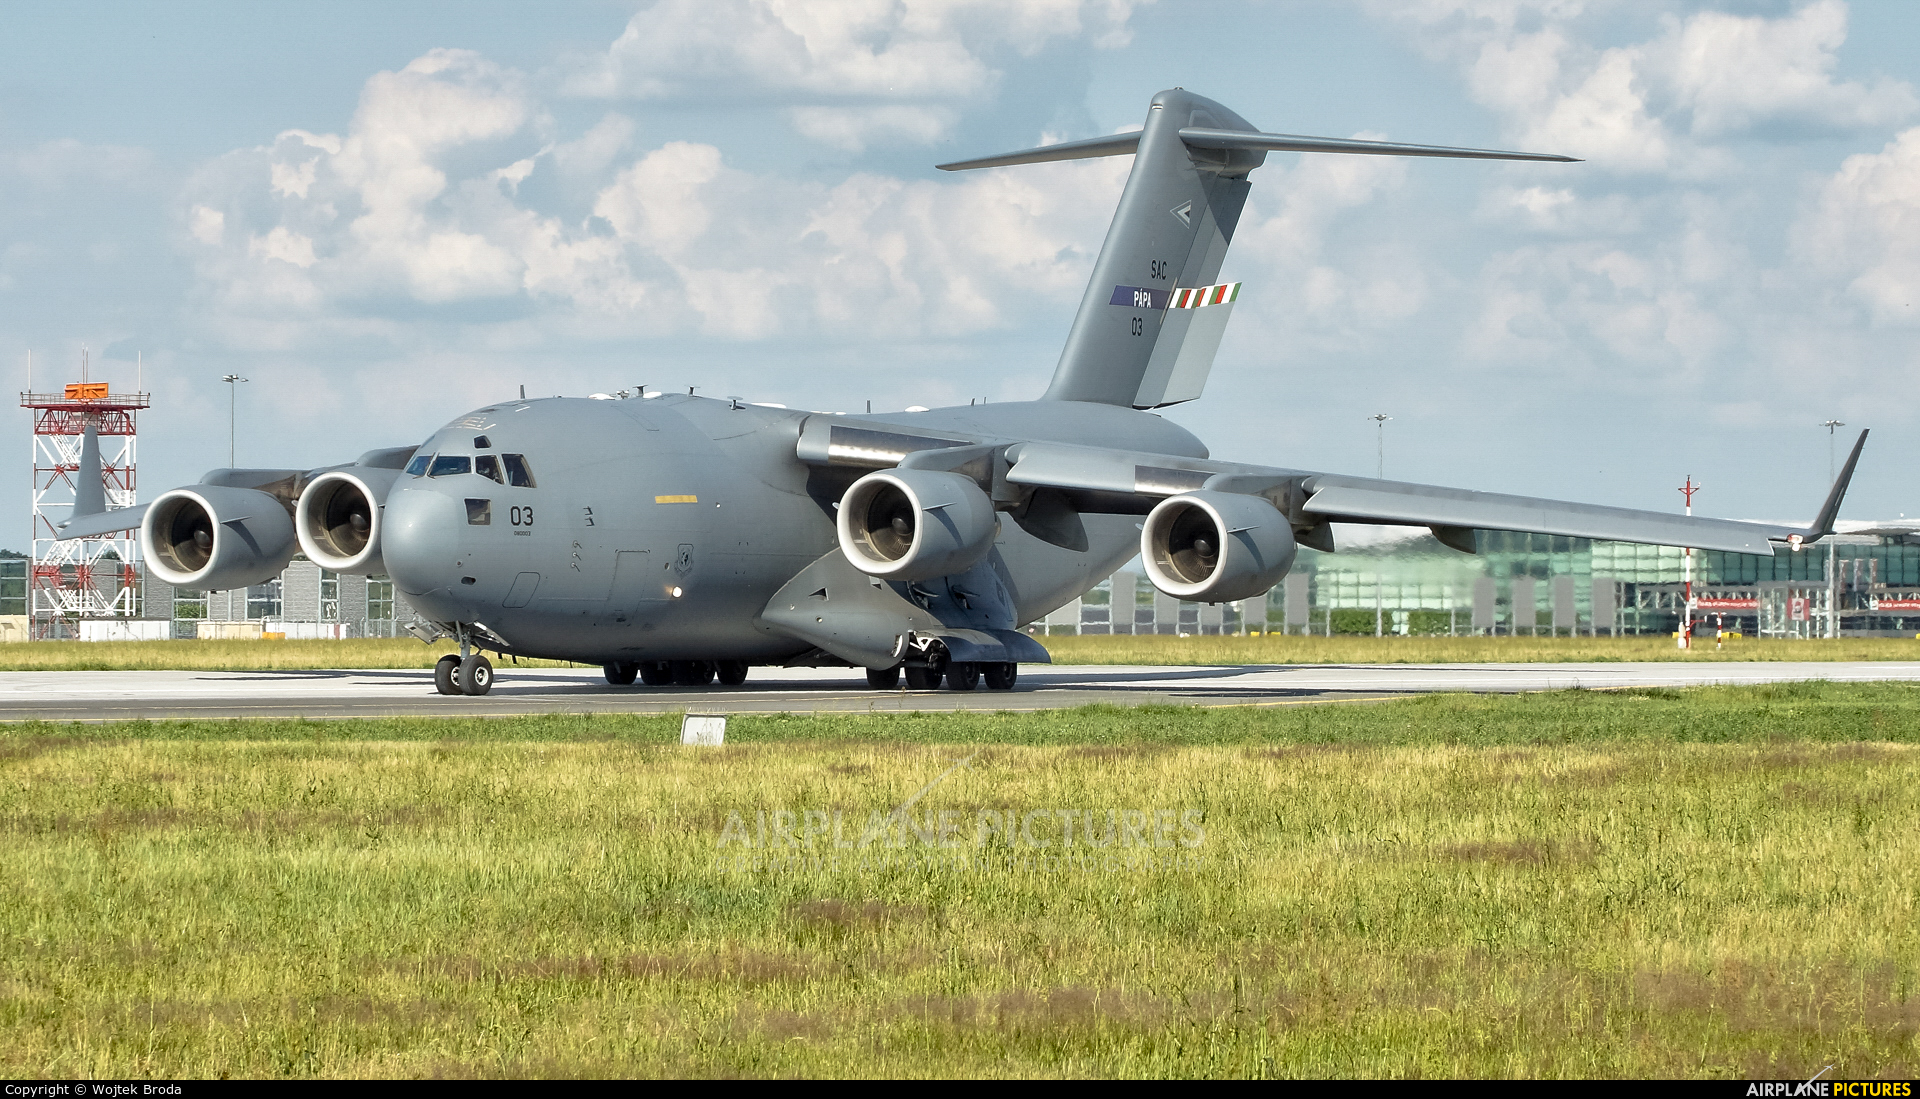 Strategic Airlift Capability NATO 08-0003 aircraft at Wrocław - Copernicus